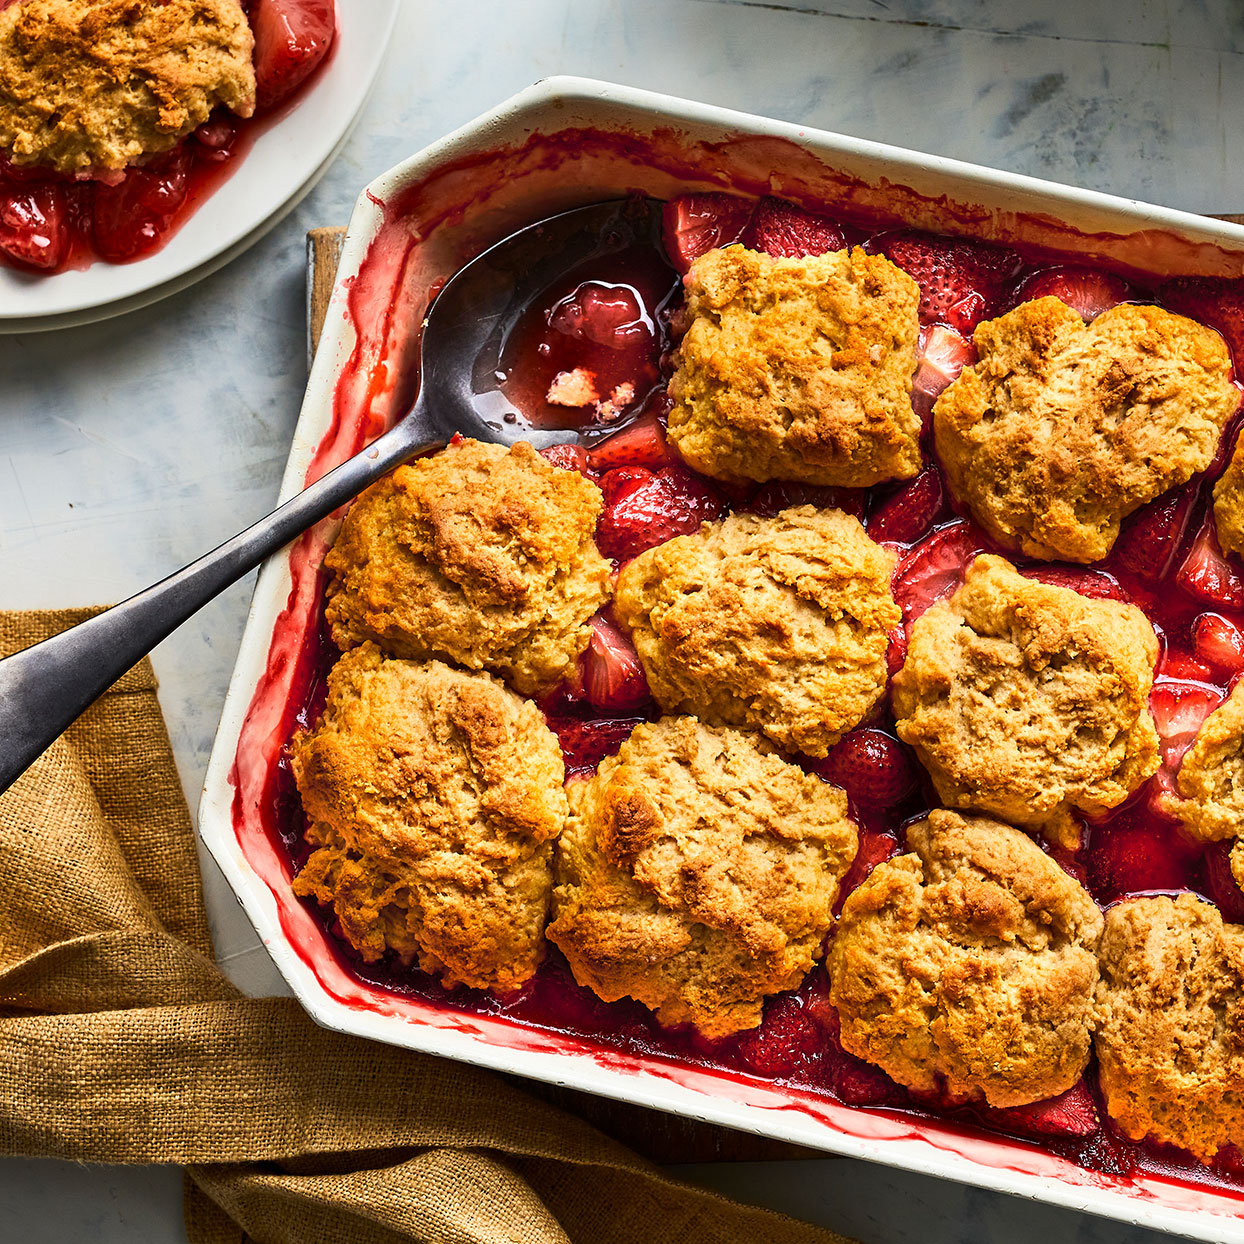 In-season strawberries shine in this simple strawberry cobbler recipe. The biscuits on top are light and fluffy, with crispy tops and hint of sweetness. This strawberry cobbler creates the perfect amount of sauce for serving with vanilla ice cream. Source: EatingWell.com, March 2020